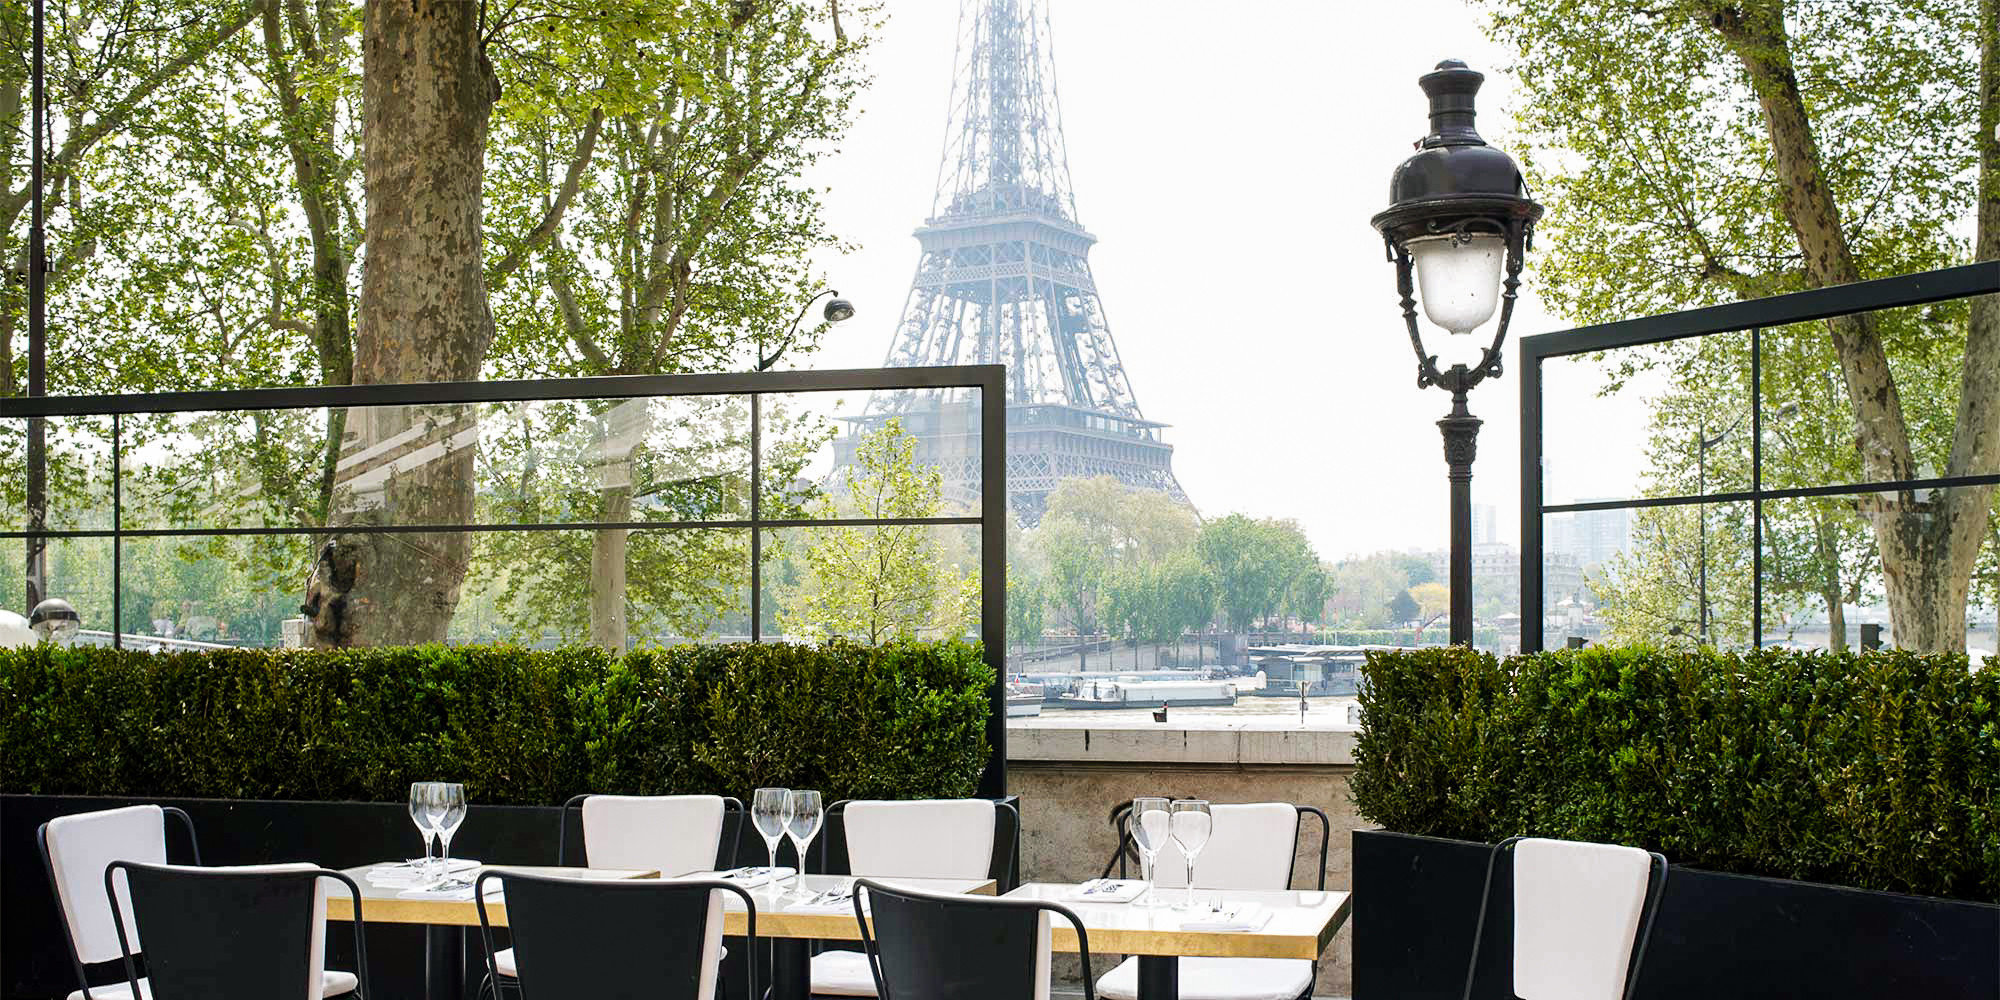 Food + Drink Hotels Romance Trip Ideas tree outdoor plant outdoor structure real estate home window restaurant house furniture